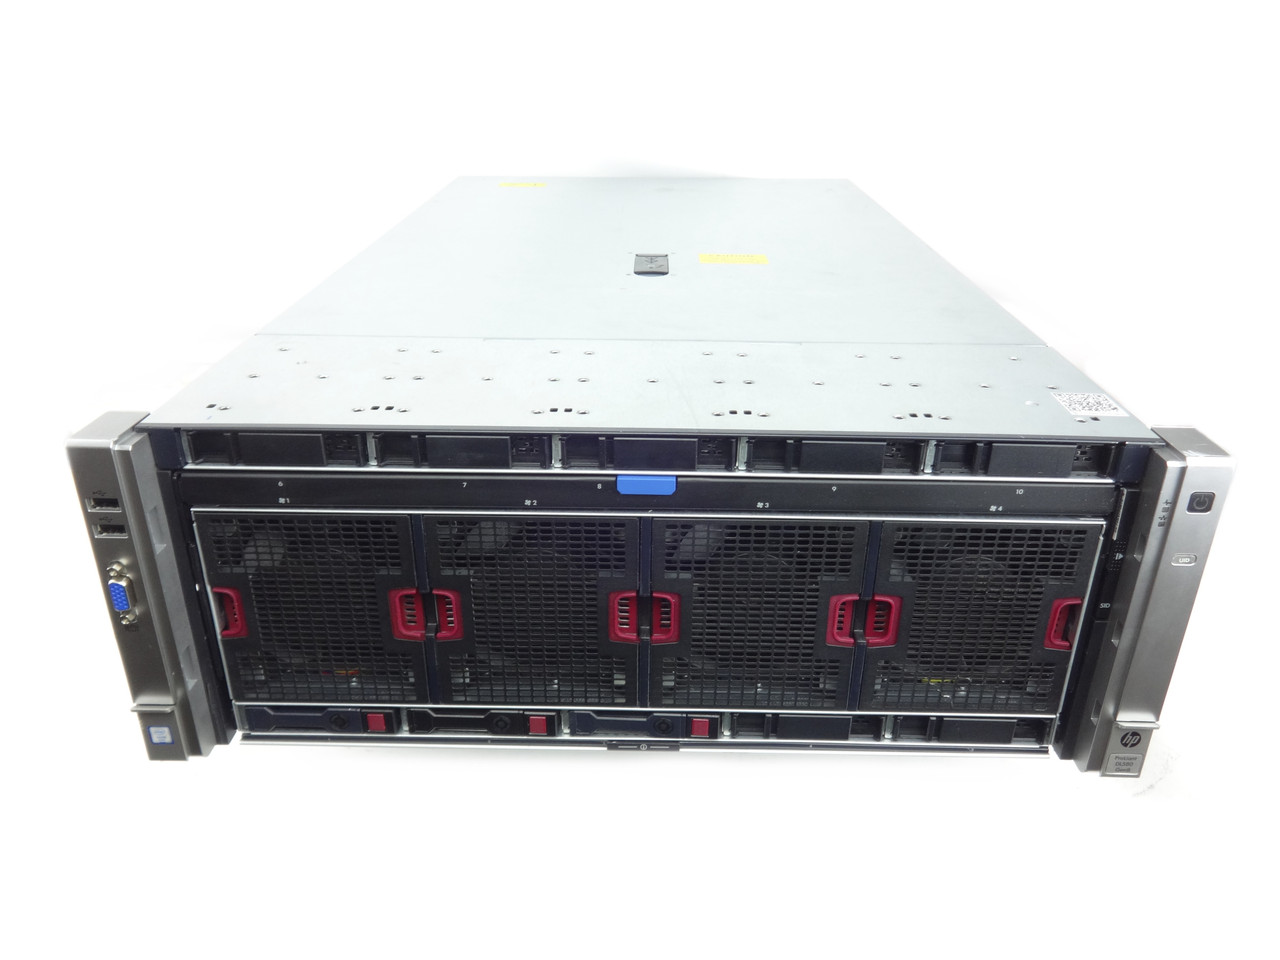 Proliant DL580 G8 Server